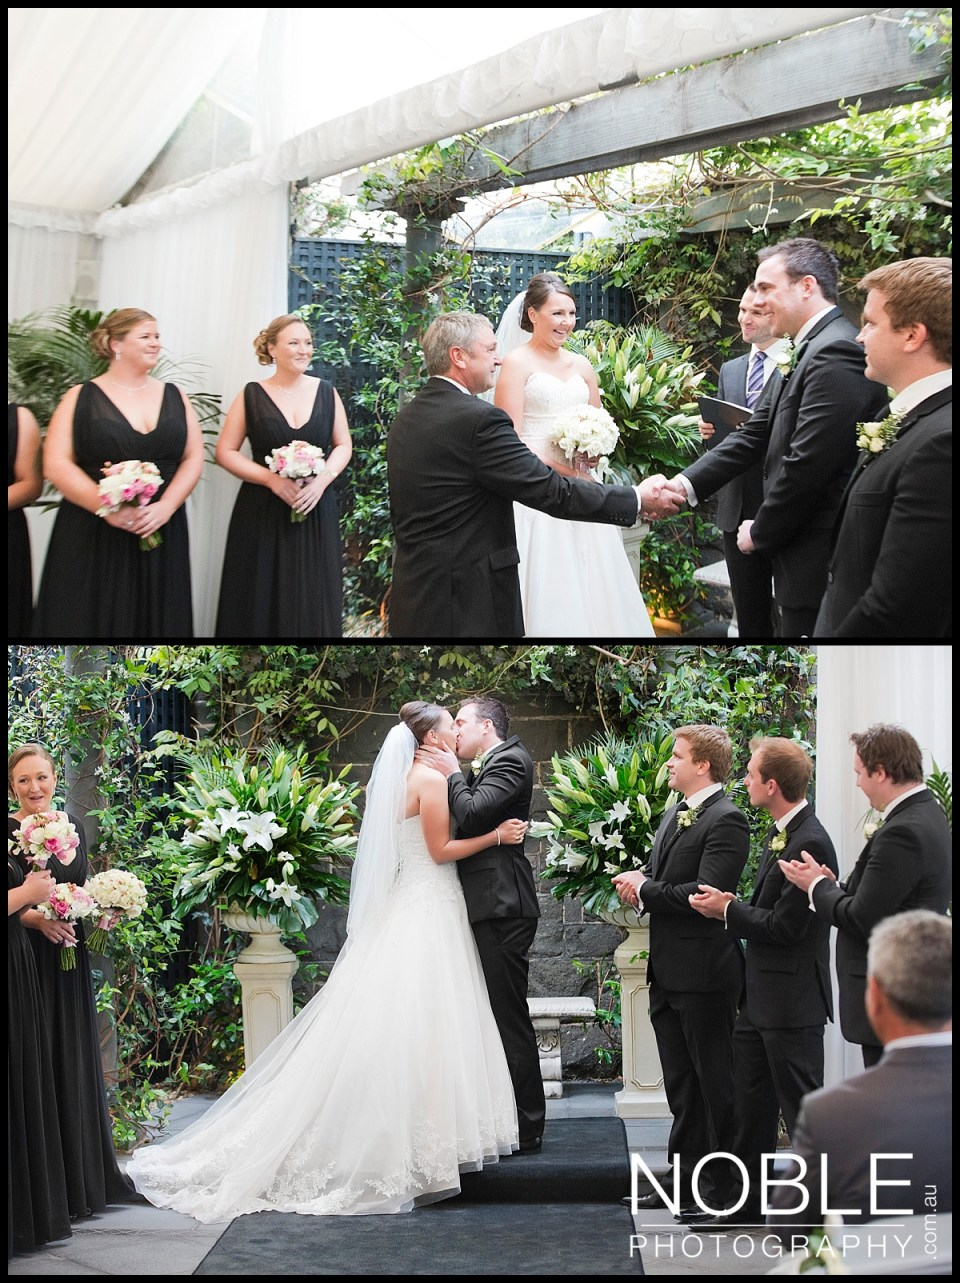 Wedding Ceremony at Butleigh Wootton